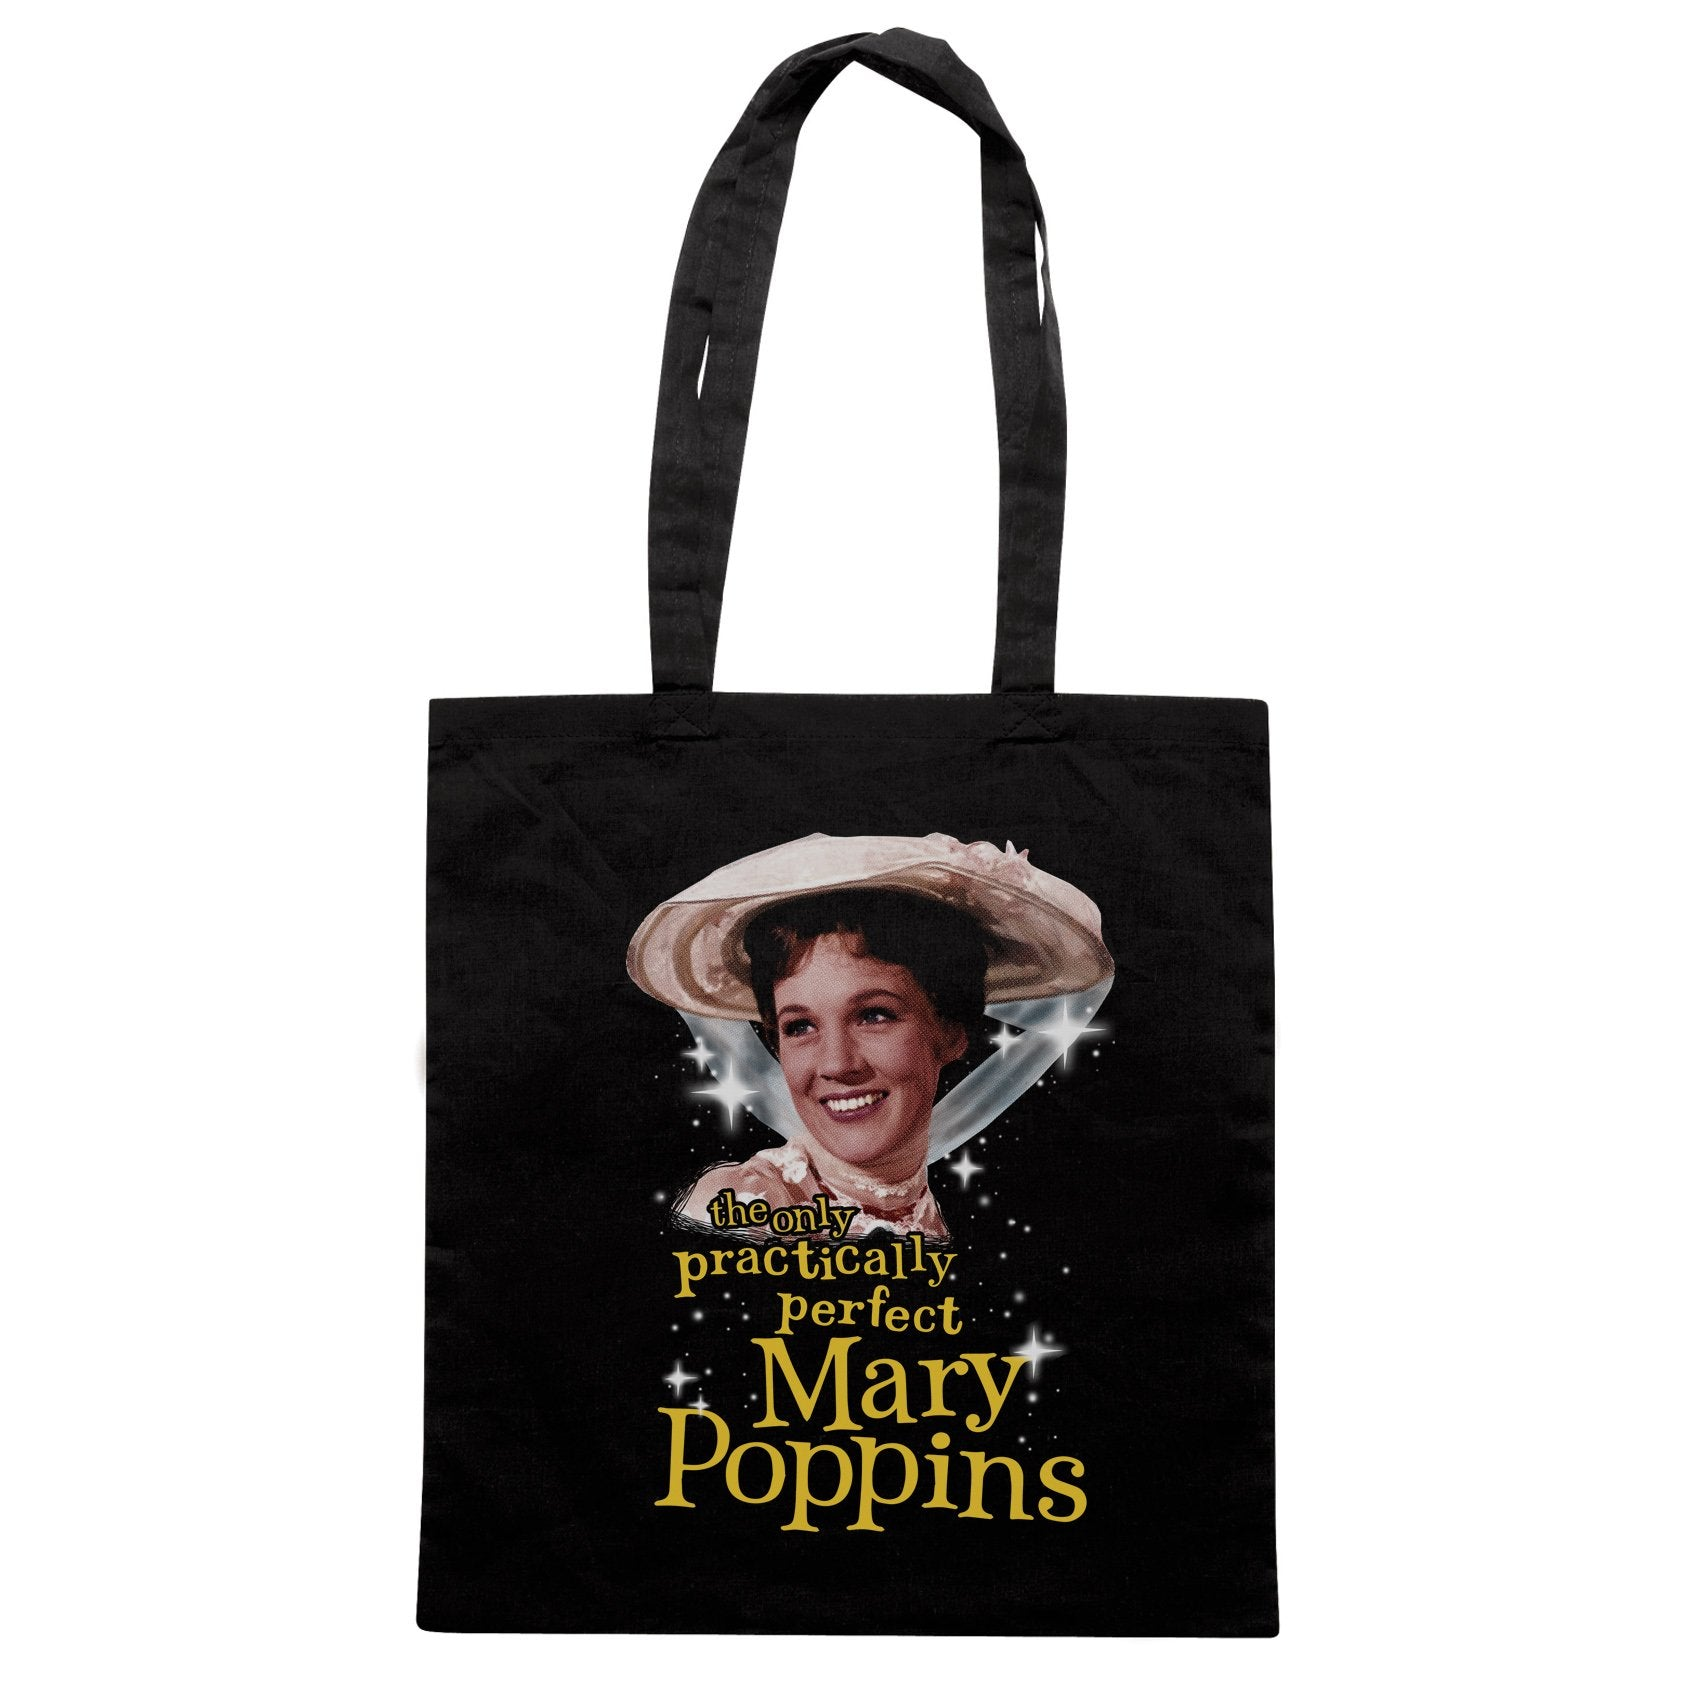 White Borsa Mary Poppins Practically Perfect Vintage - Nera - FILM CucShop